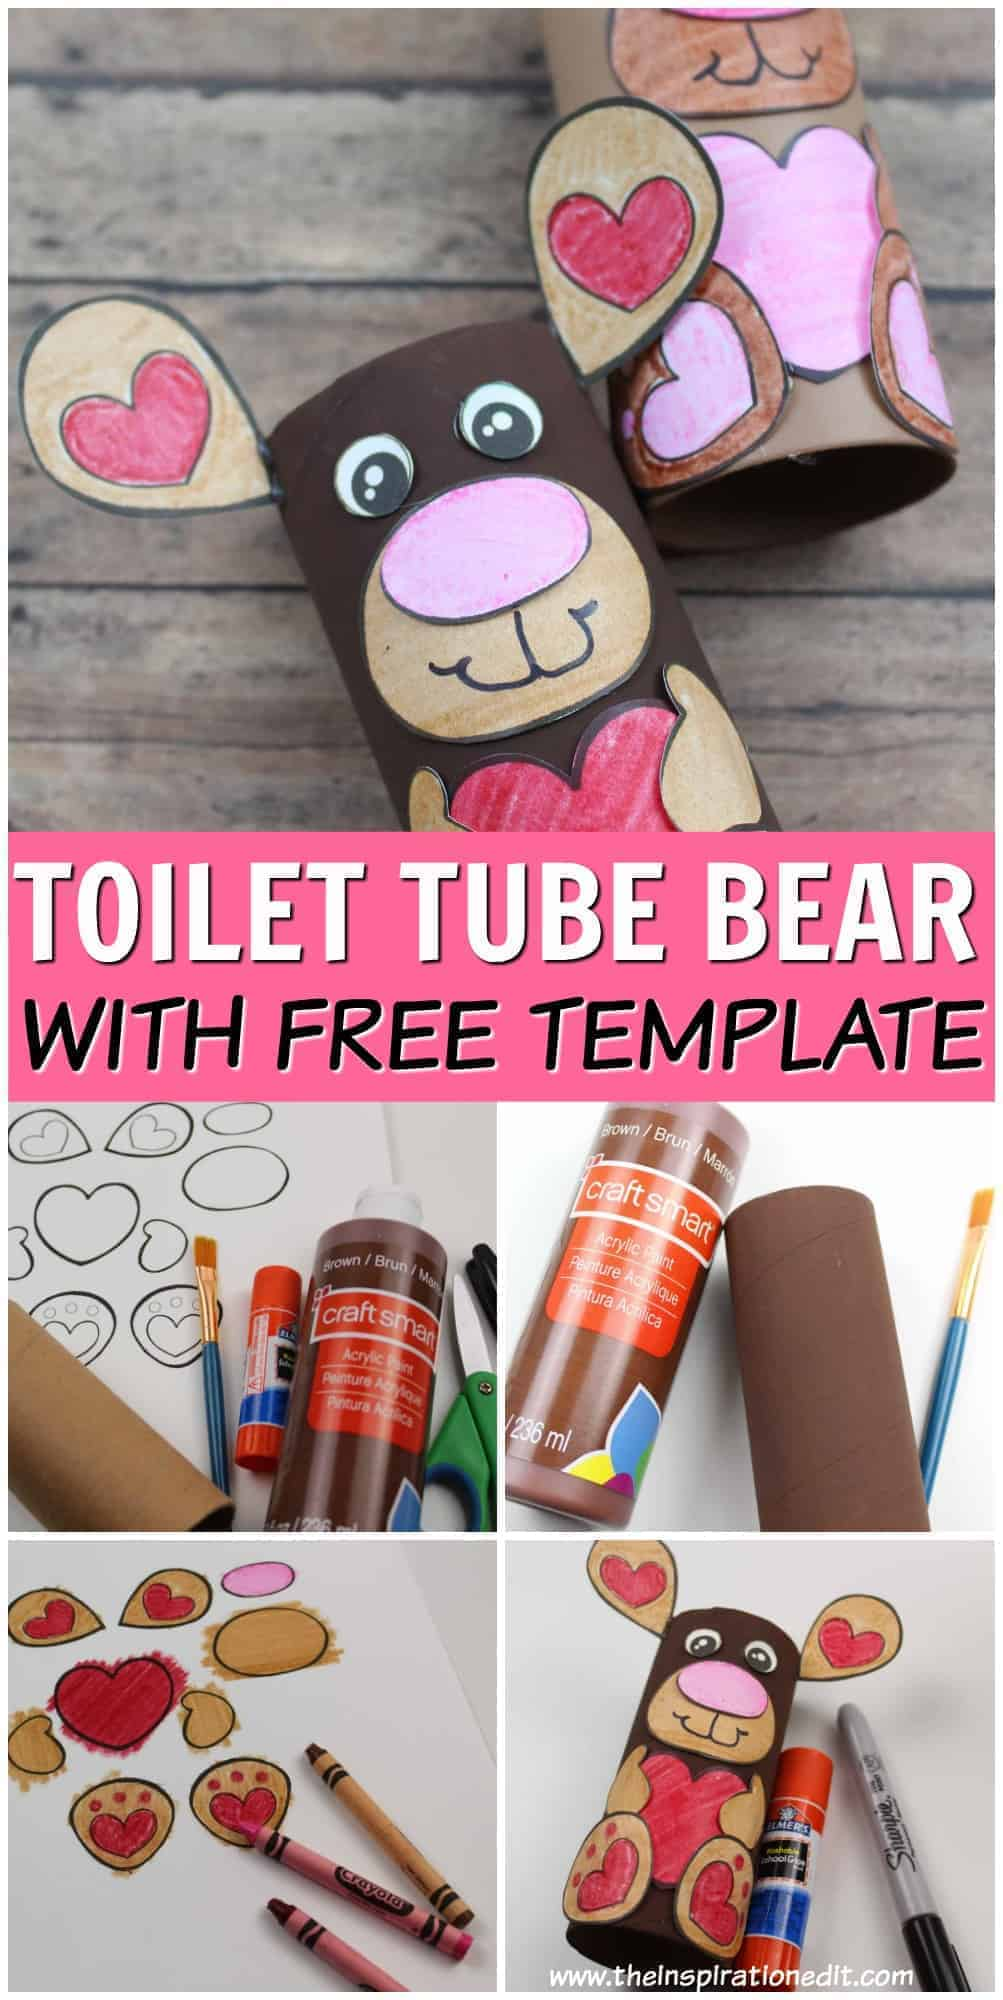 toilet tube bear with free template